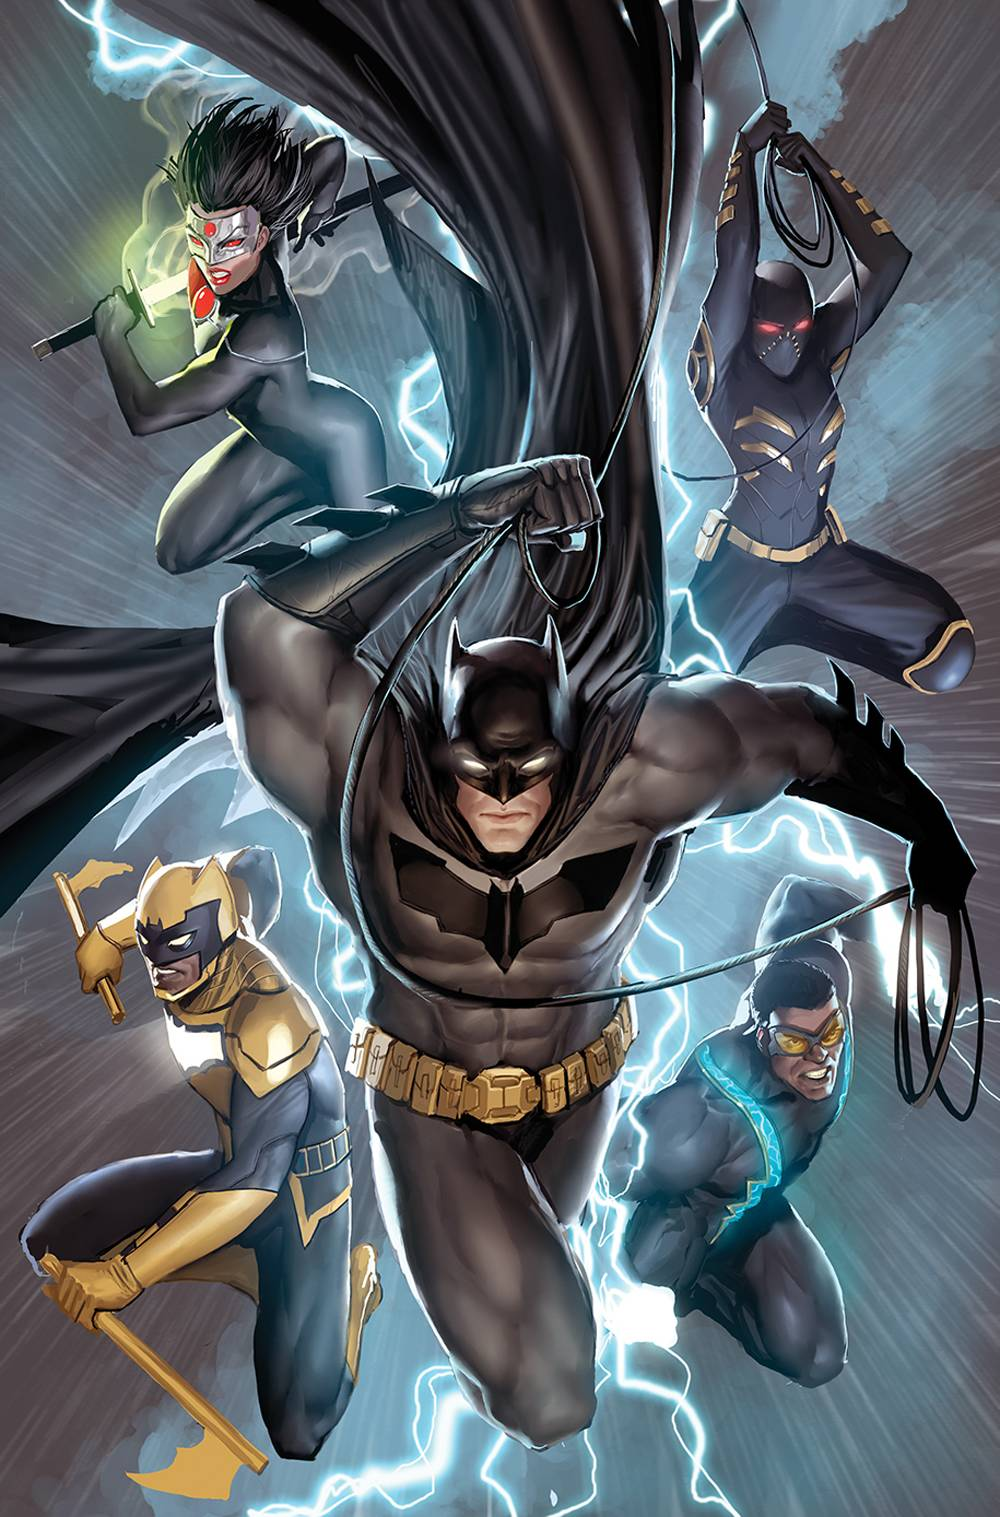 BATMAN AND THE OUTSIDERS #1 STEJPAN SEJIC VARIANT 05/08/19 FOC 04/15/19